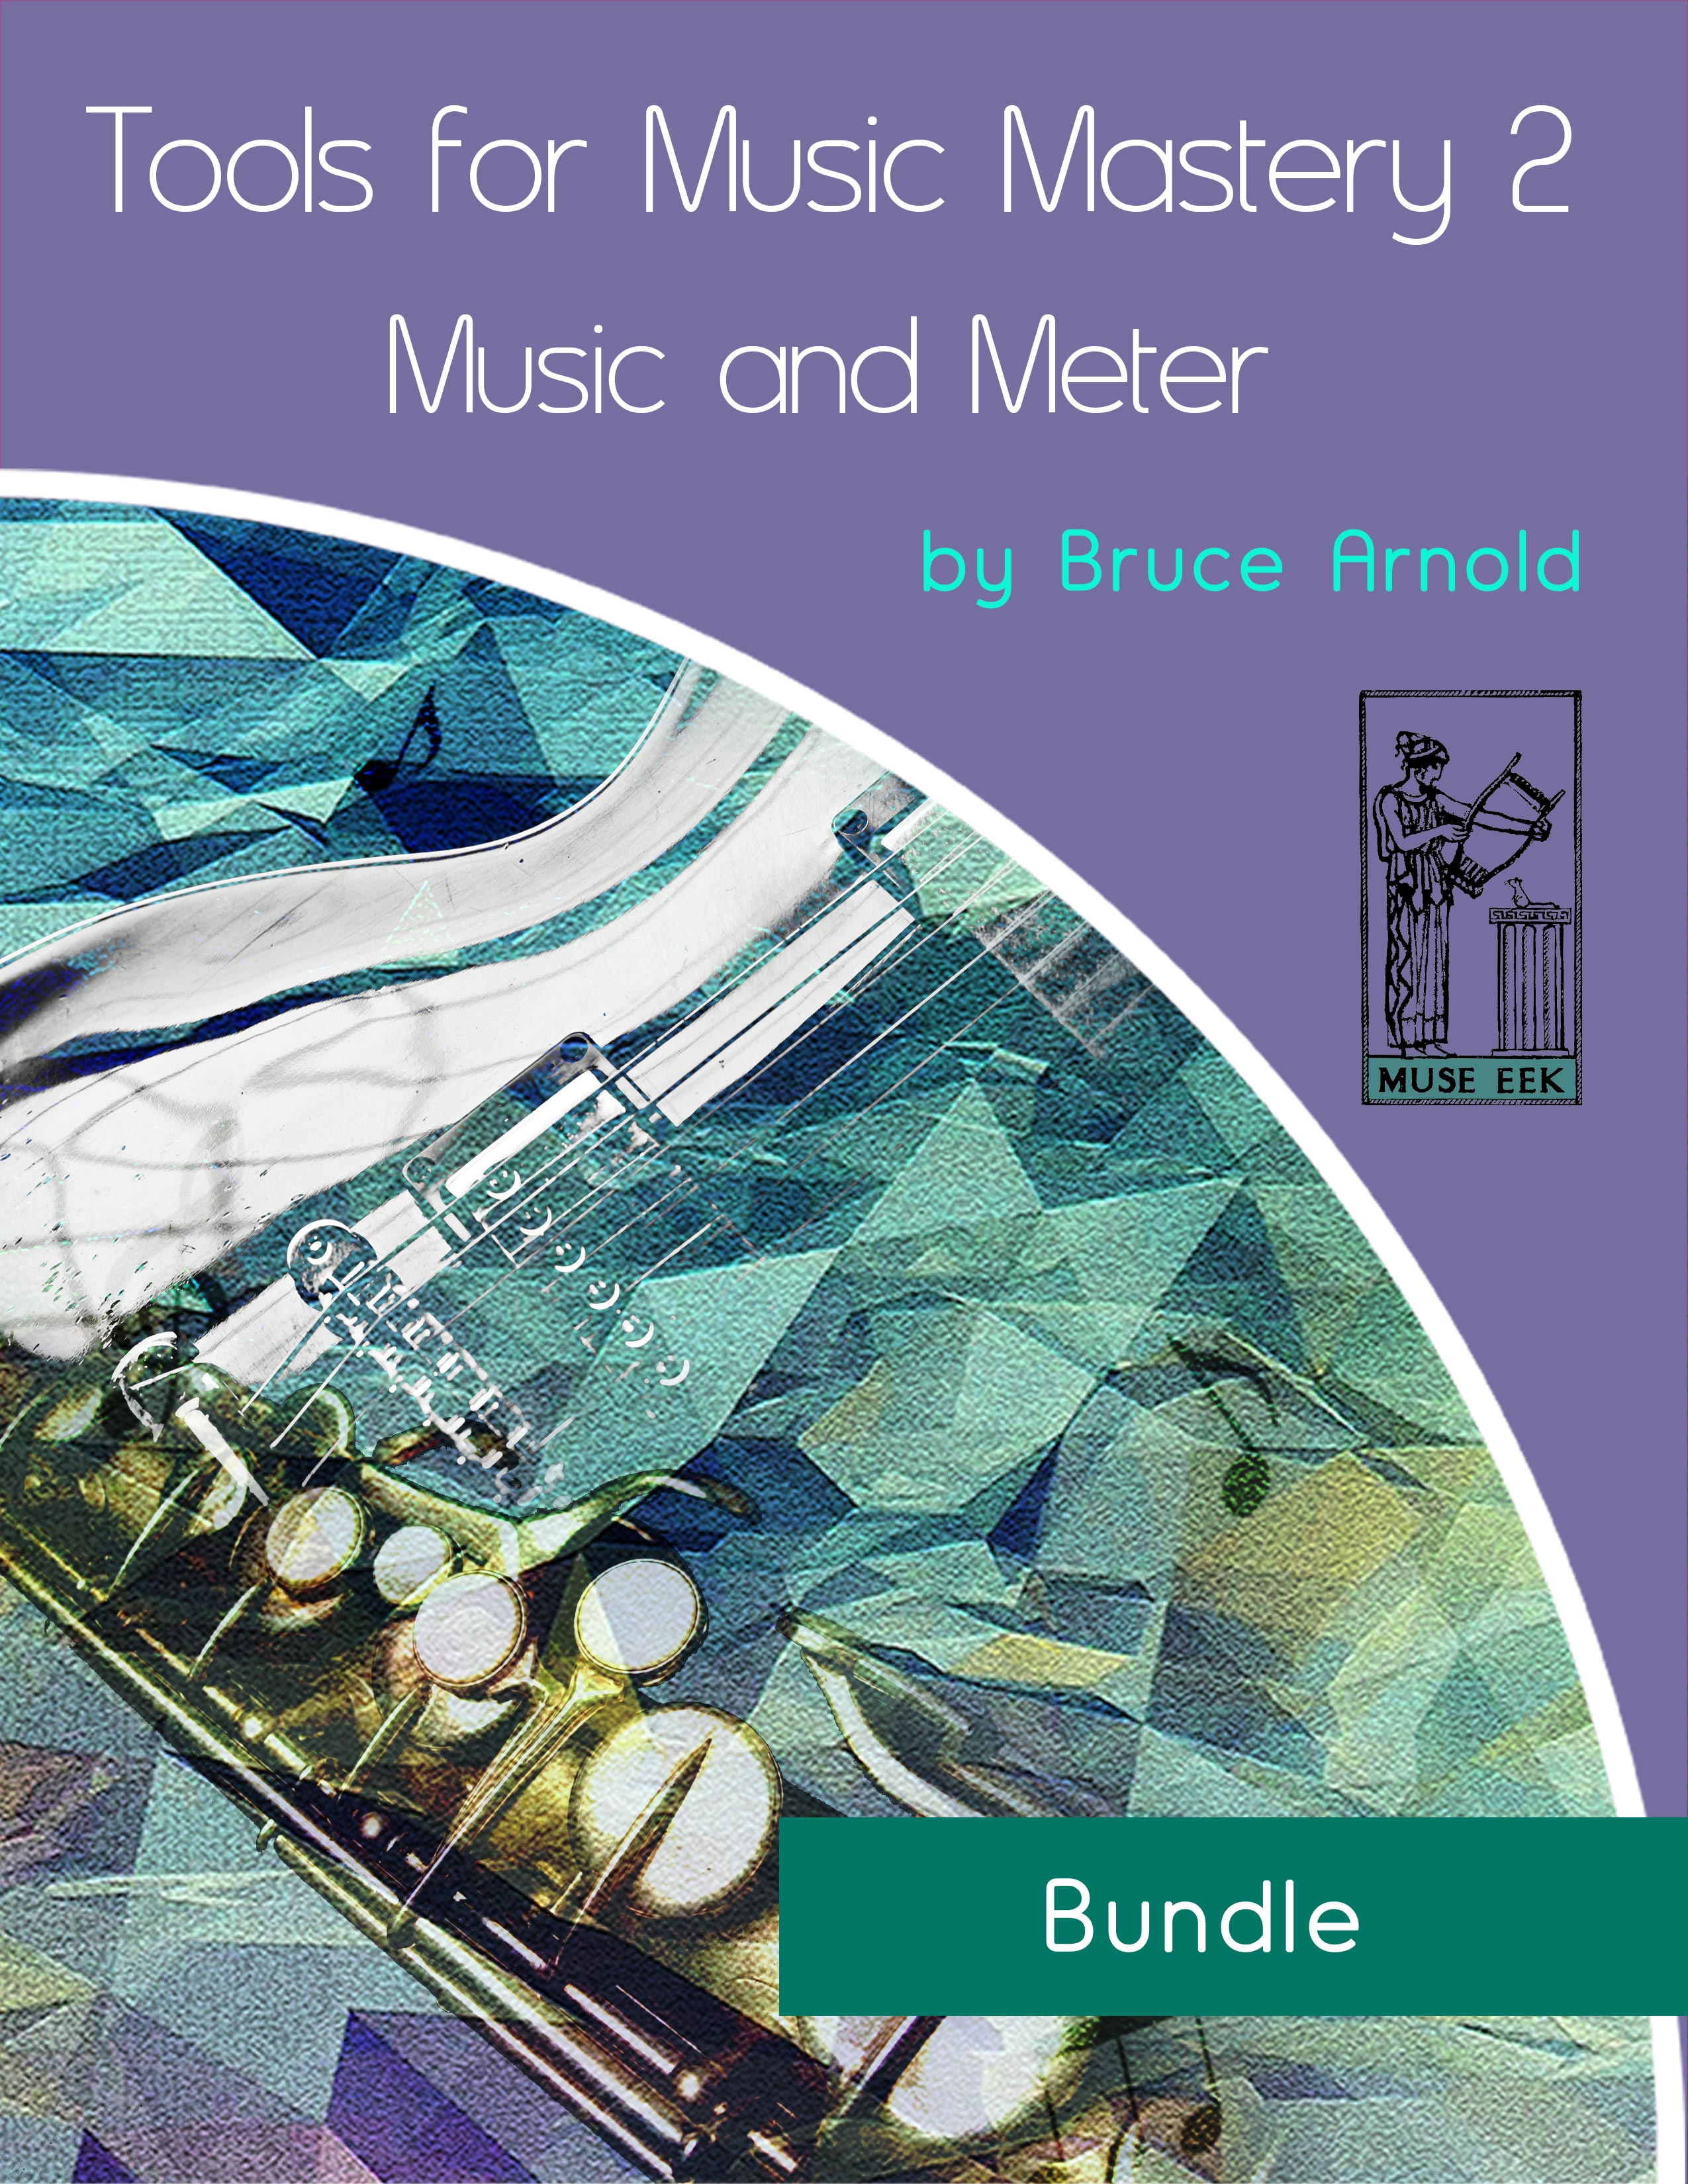 Tools for Music Mastery 2 Bundle